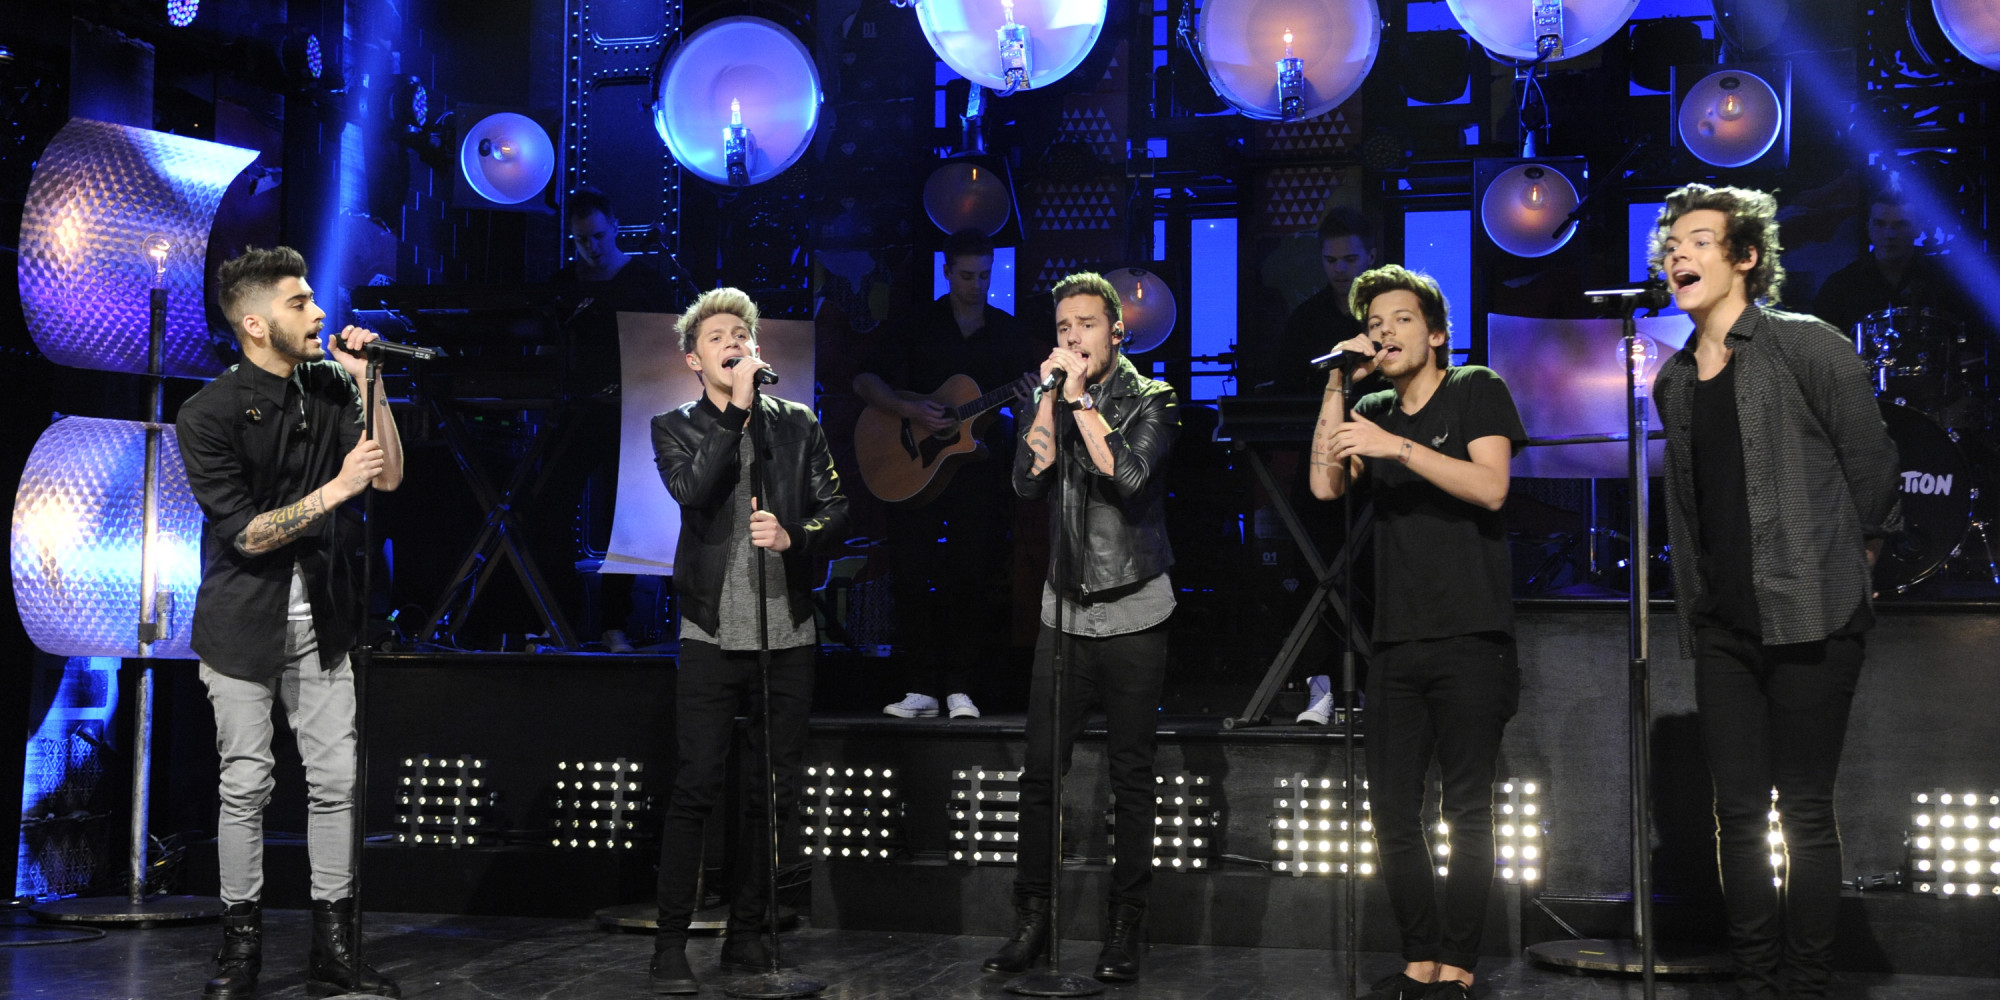 ... Direction Slows It Down For Their Third 'SNL' Appearance | HuffPost